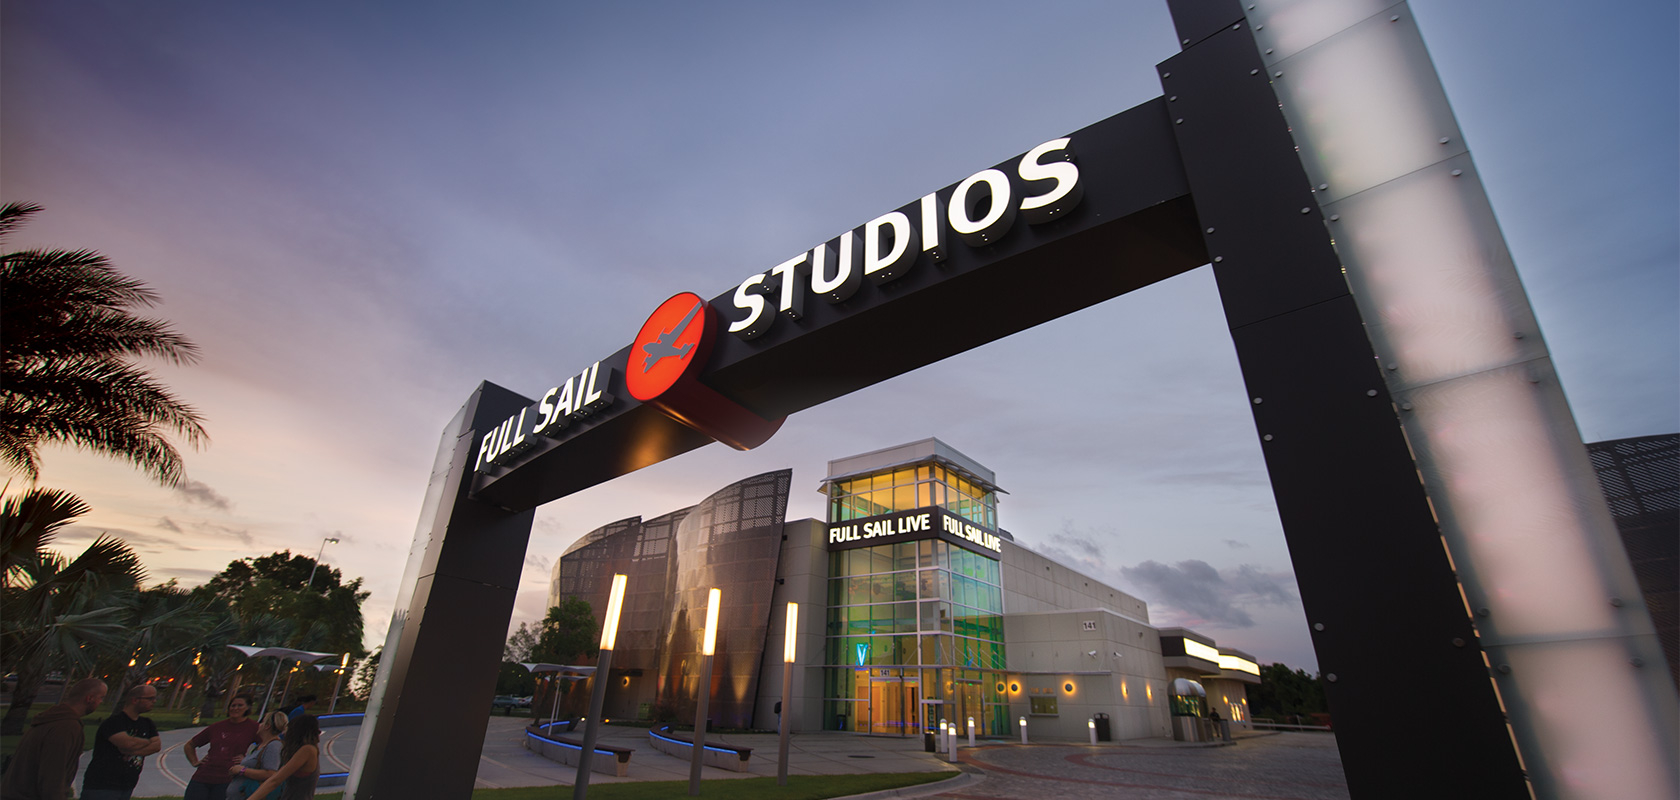 Full Sail University Обучение За Рубежом (Киев) – Отзывы Intended For Full Sail University Winter Break